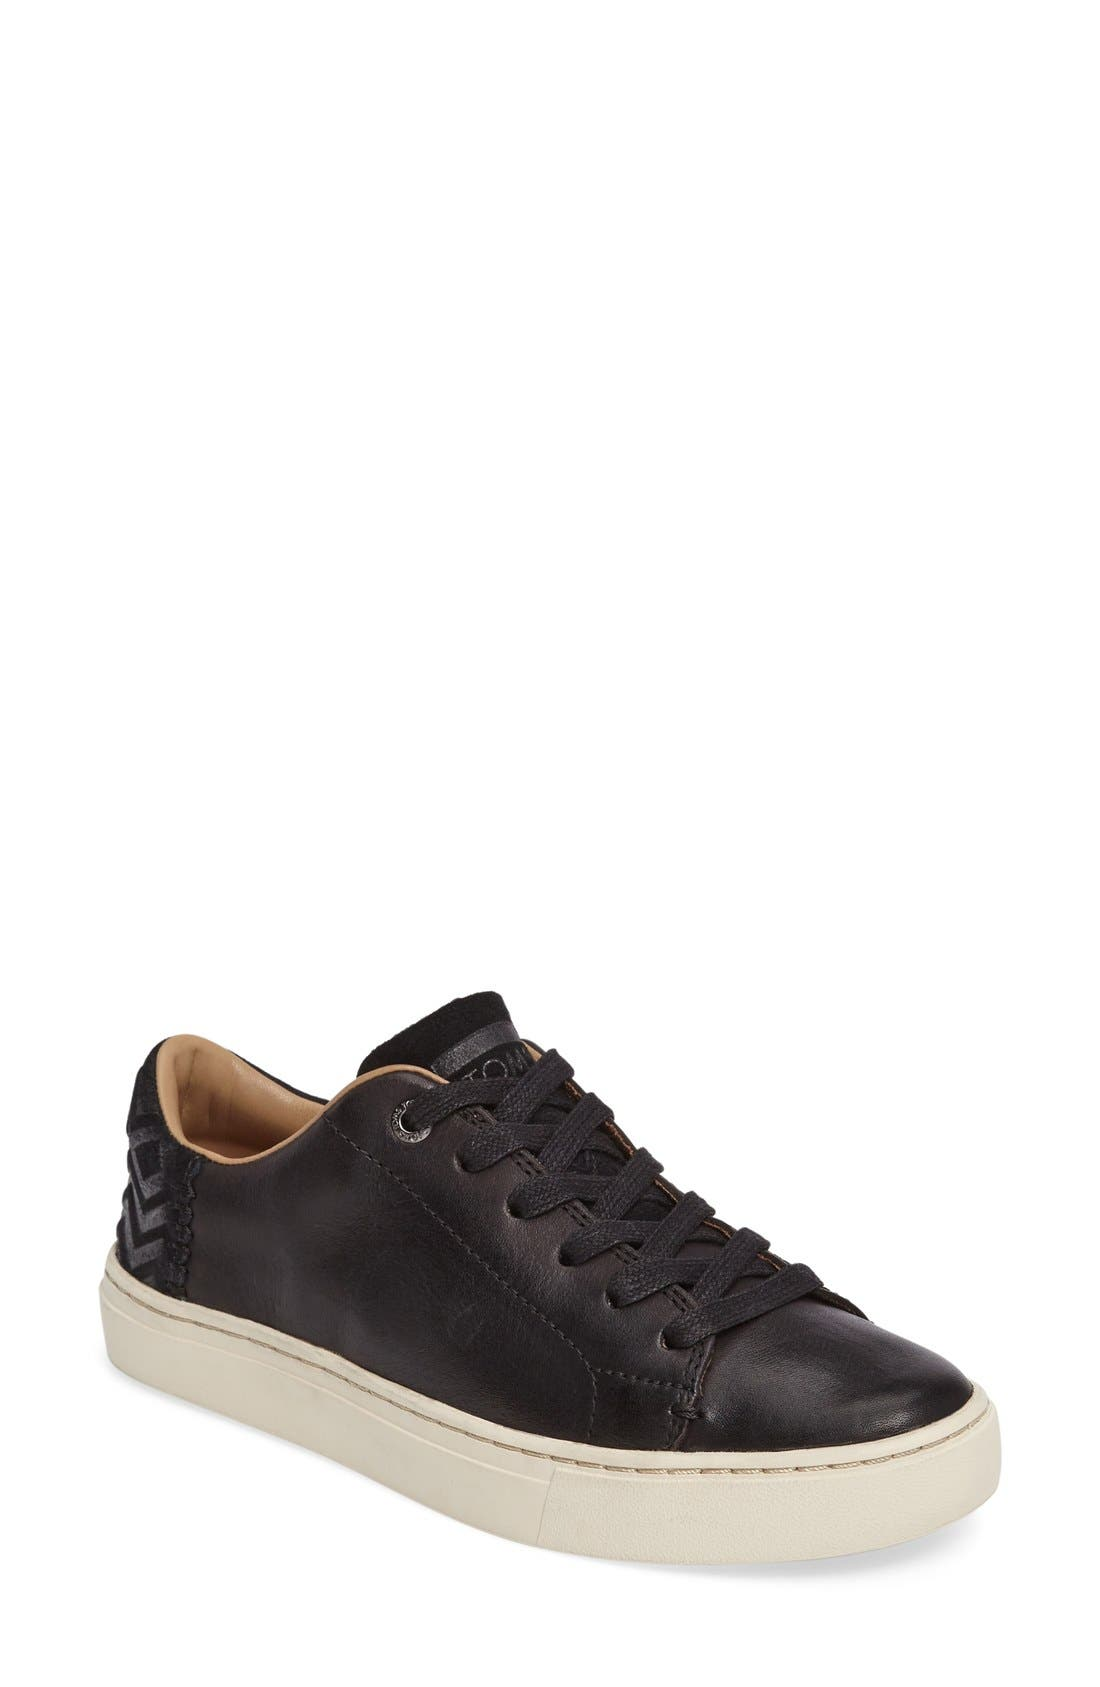 TOMS Lenox Sneaker, Main, color, 001